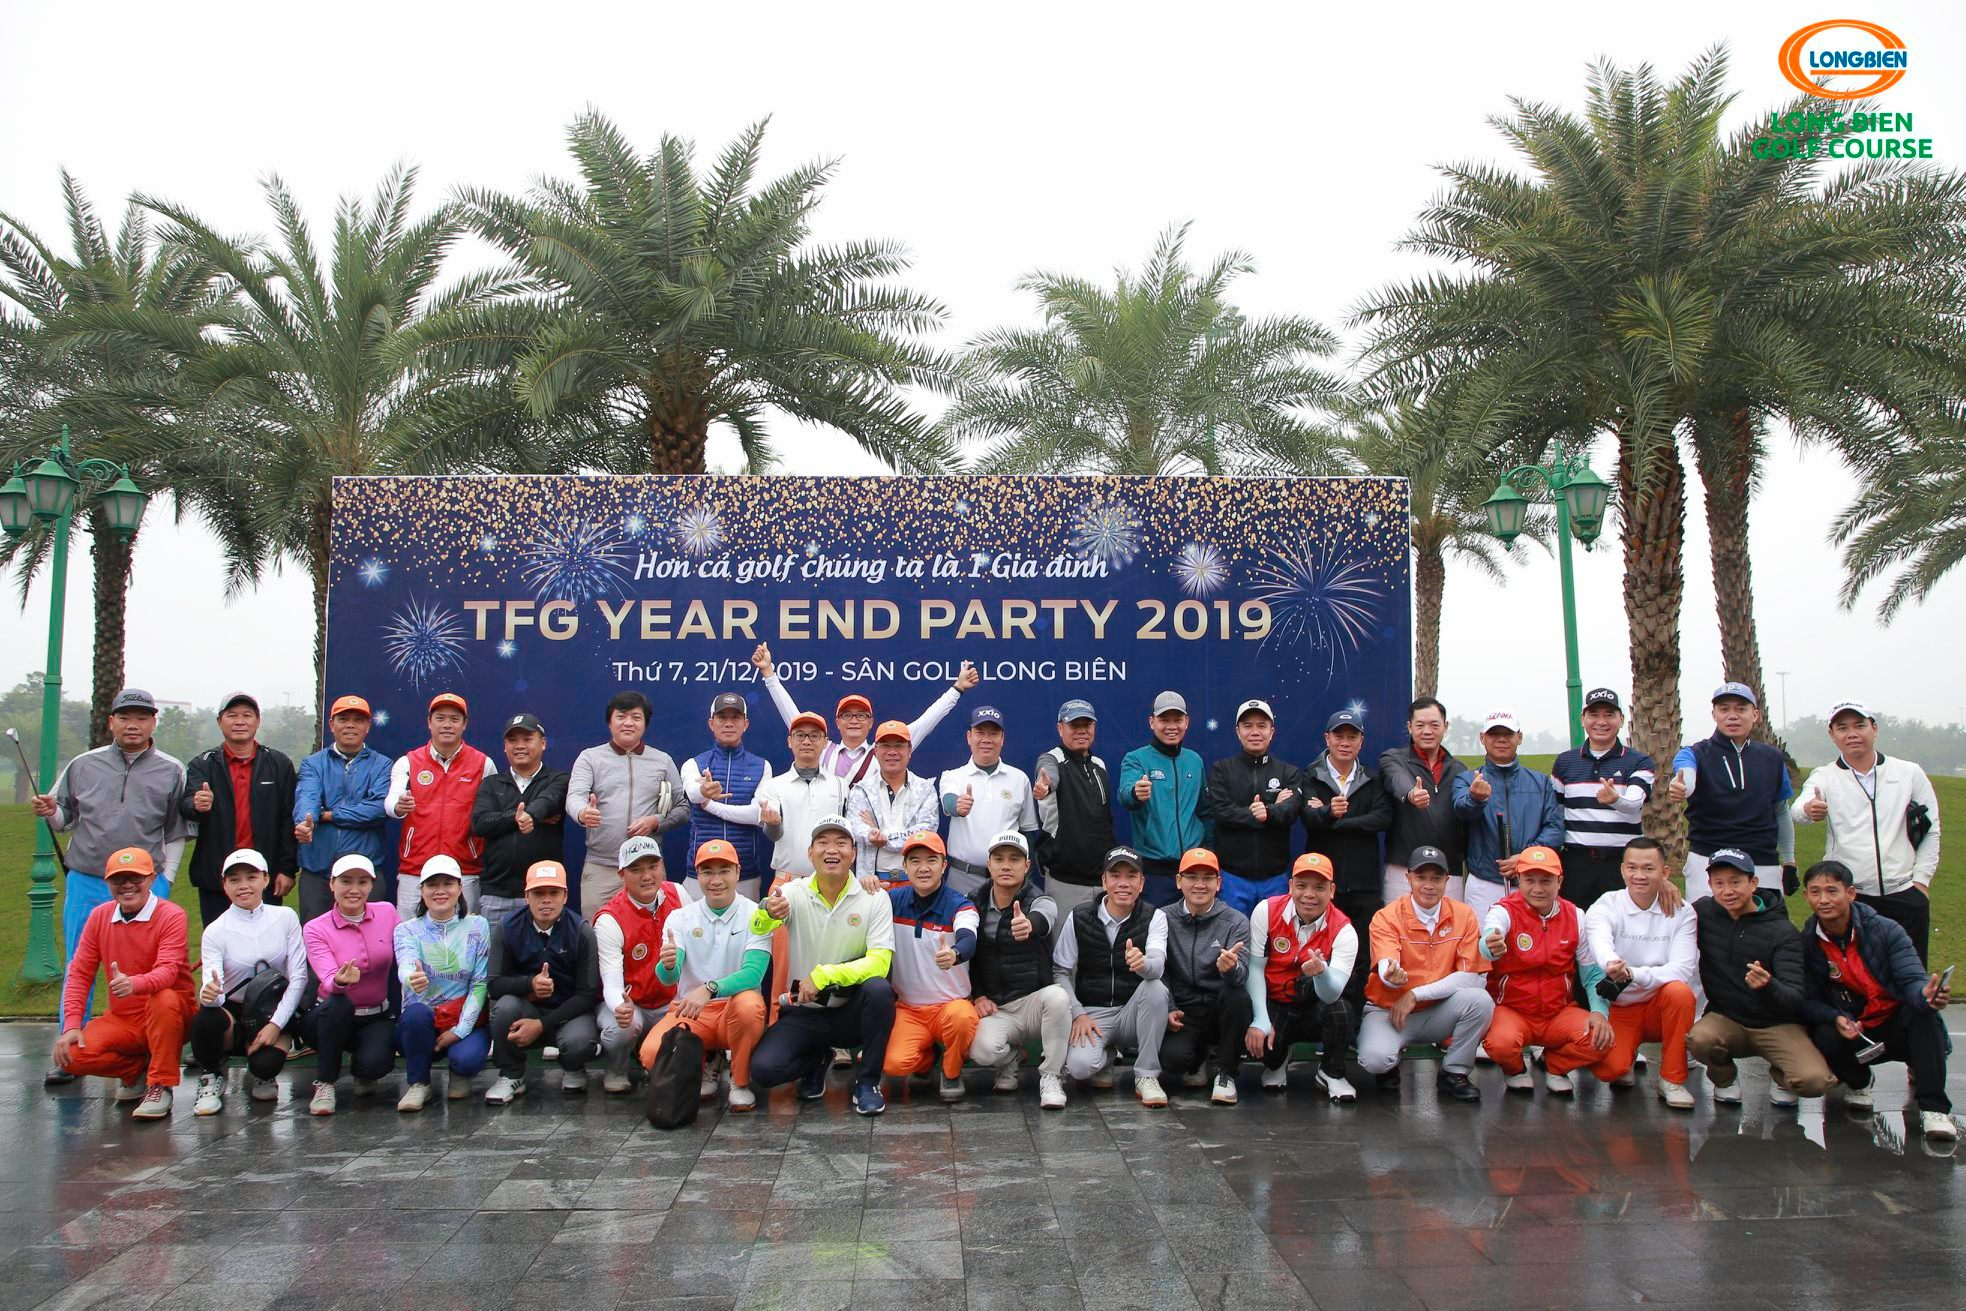 TFP Year-end Party 2019